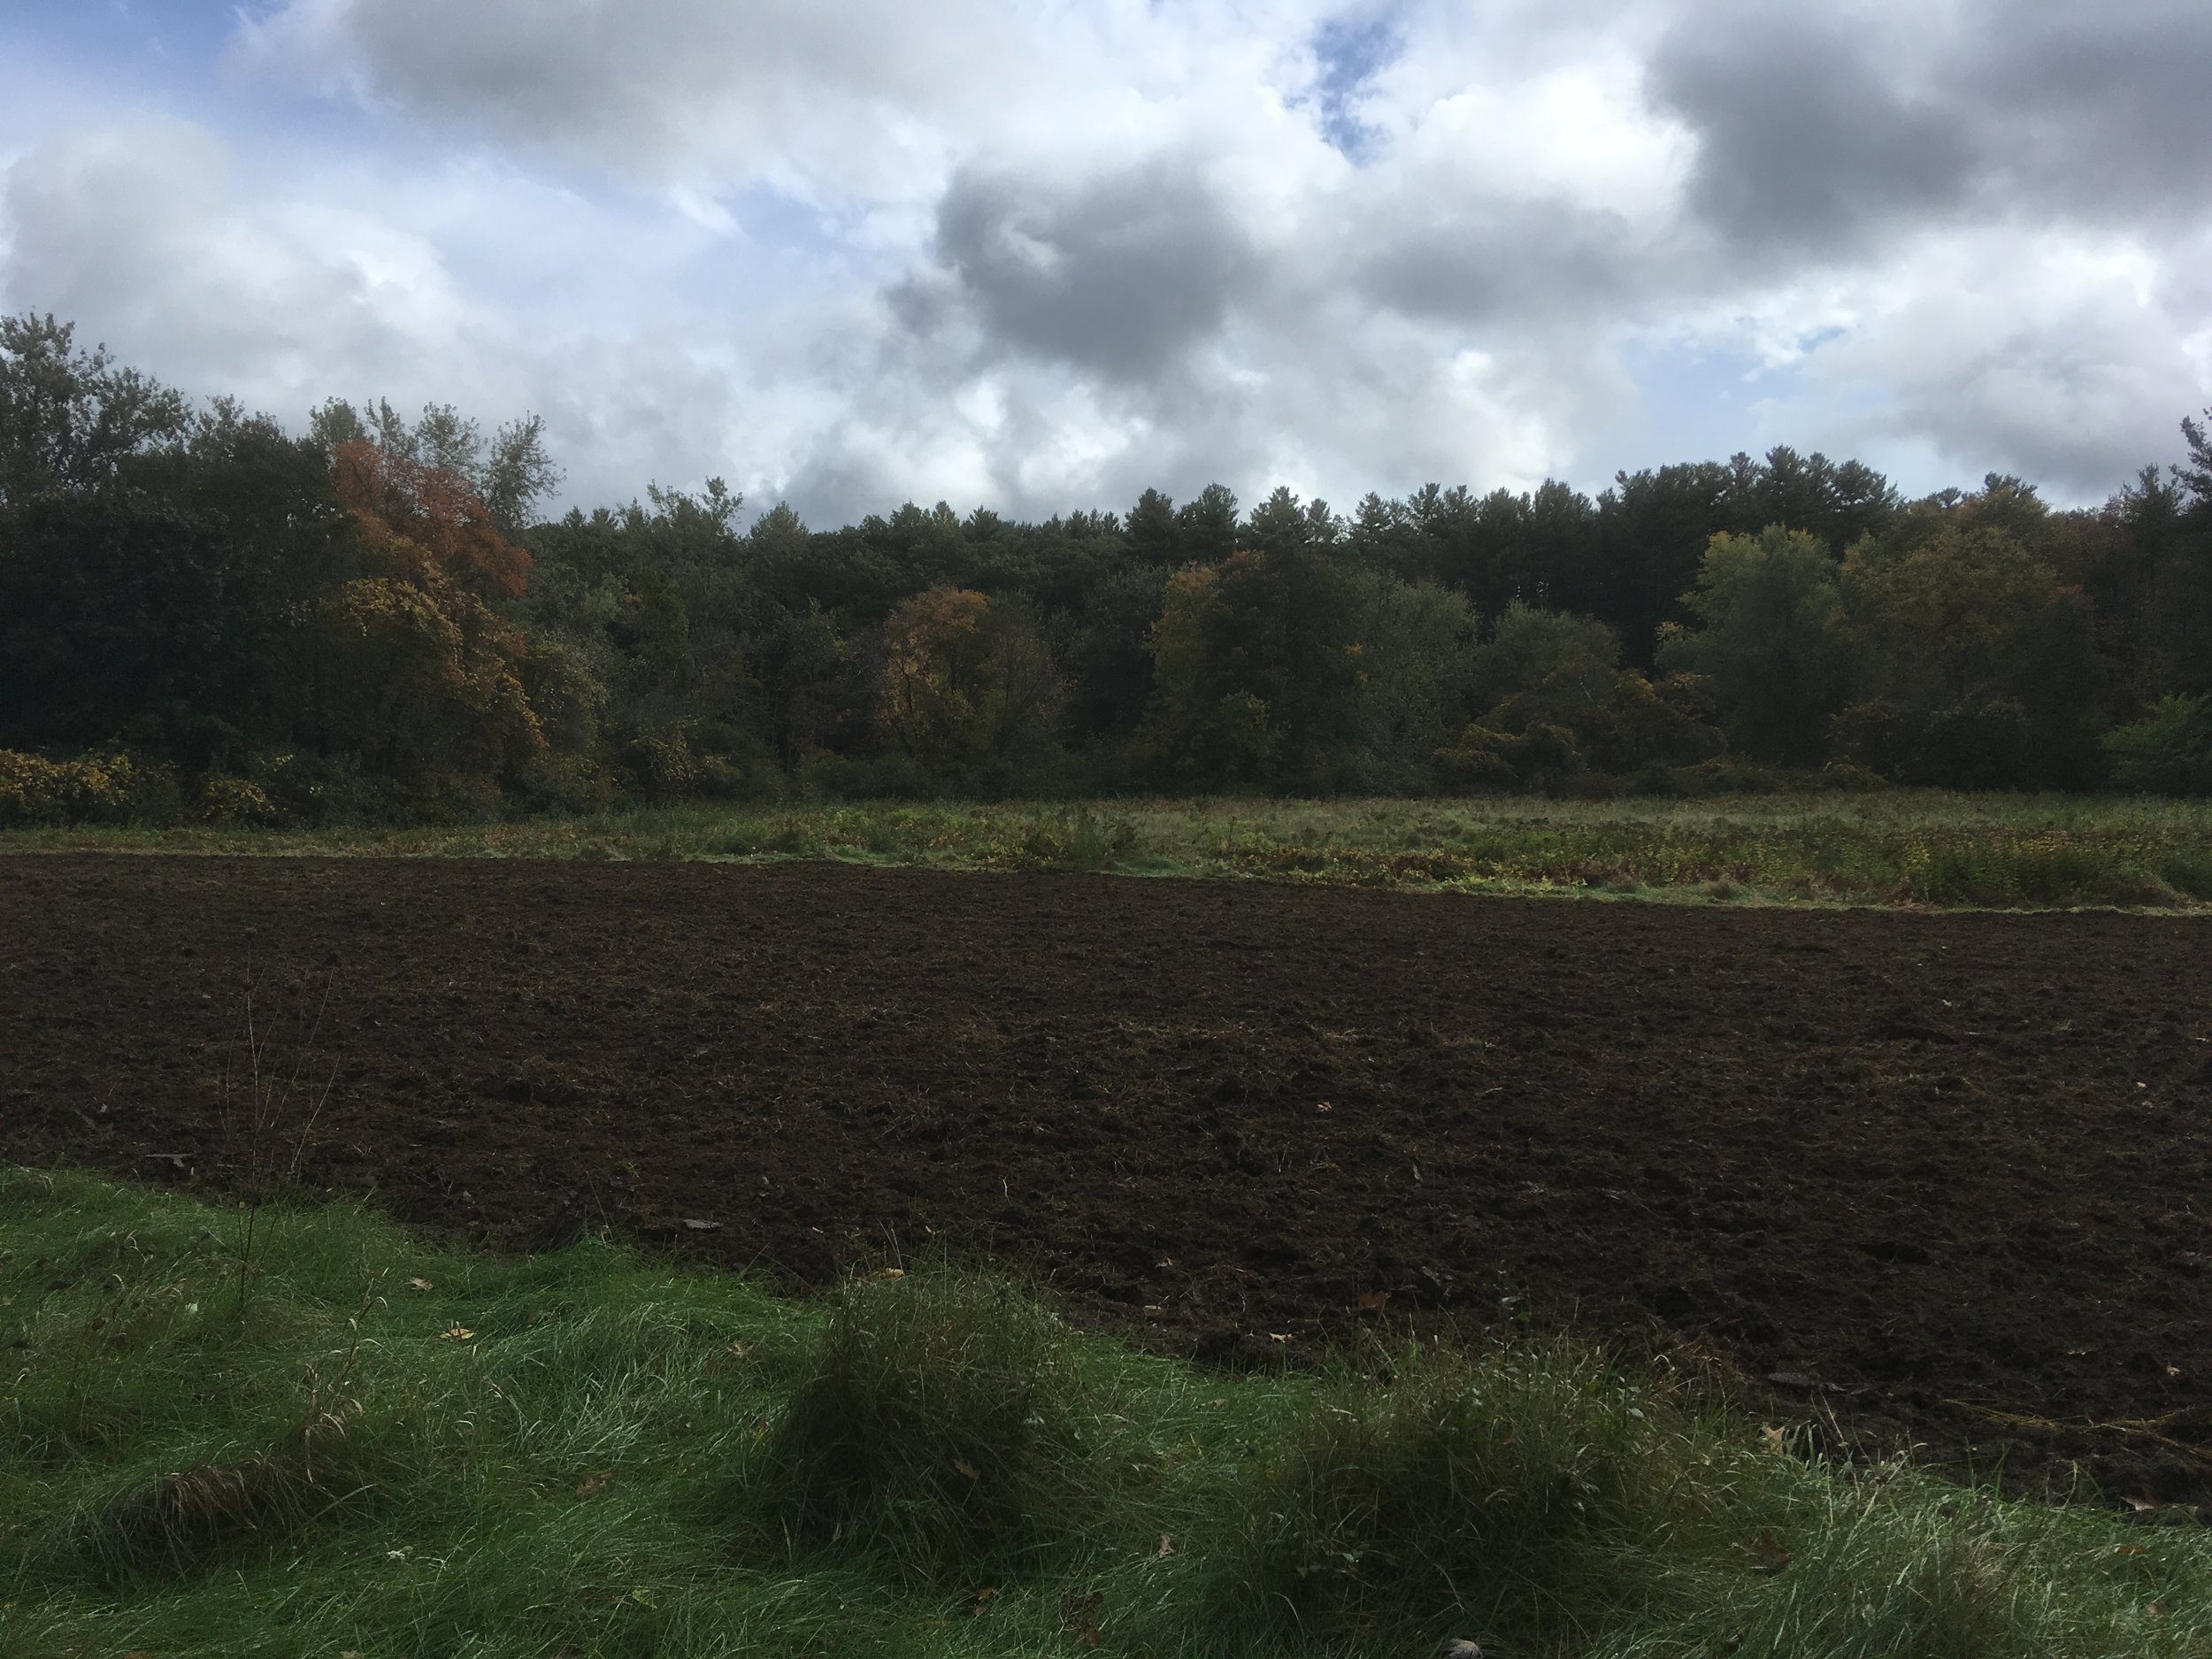 Last week, we finally had time to plow and seed cover crop at the South Corey Meadow on Barrett's Mill Road. We are so excited to start growing in this beautiful spot in future seasons!